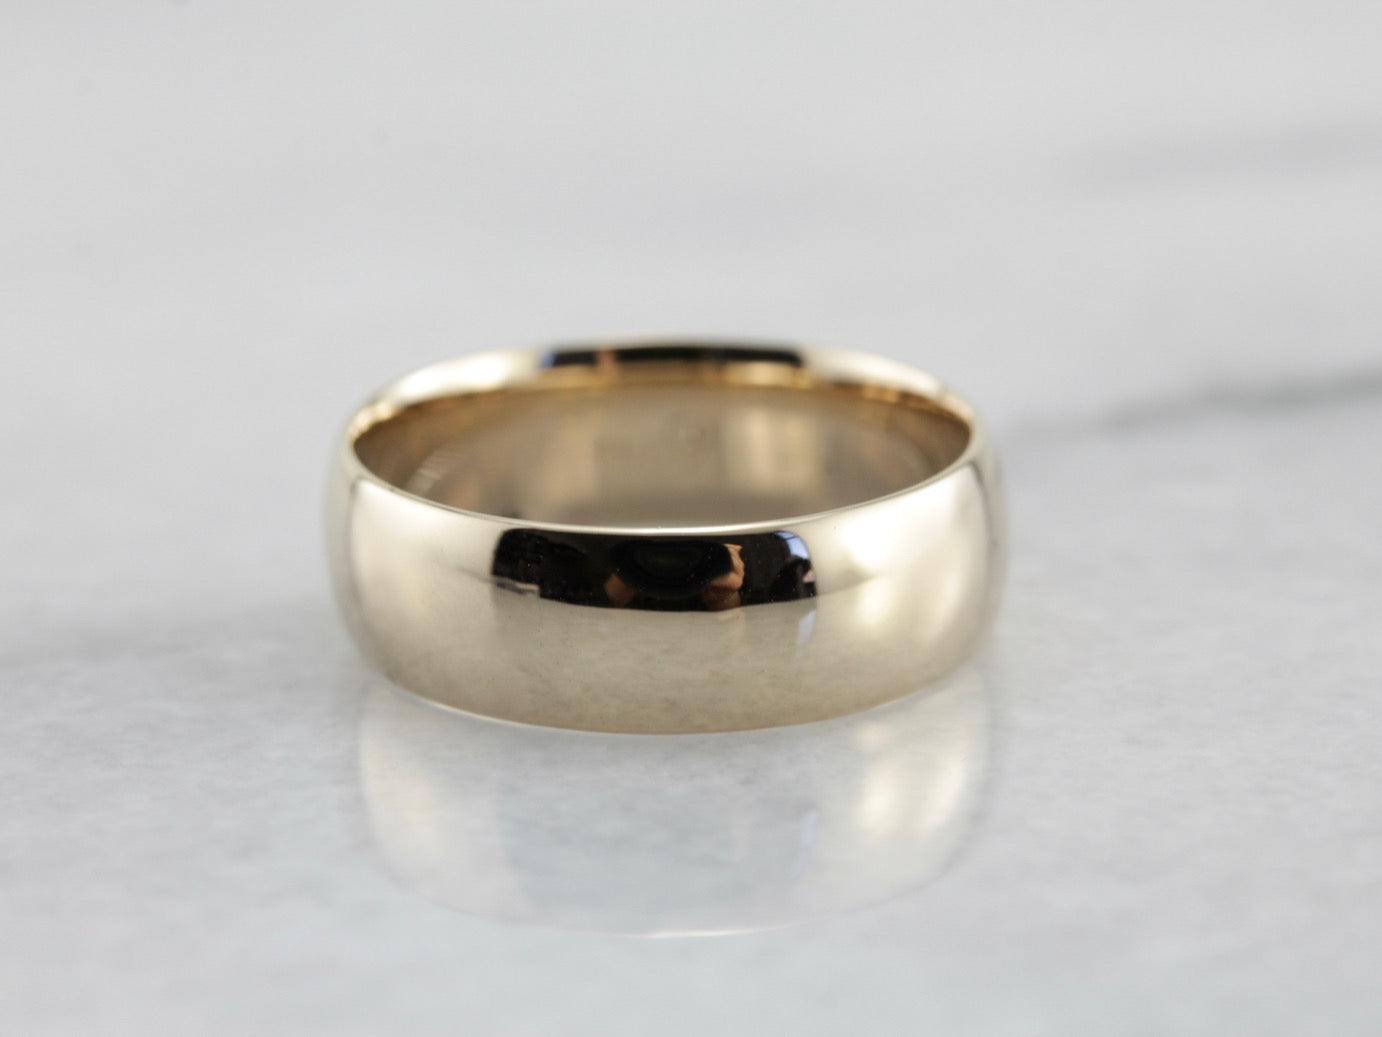 Vintage Wide Plain Yellow Gold Wedding Band